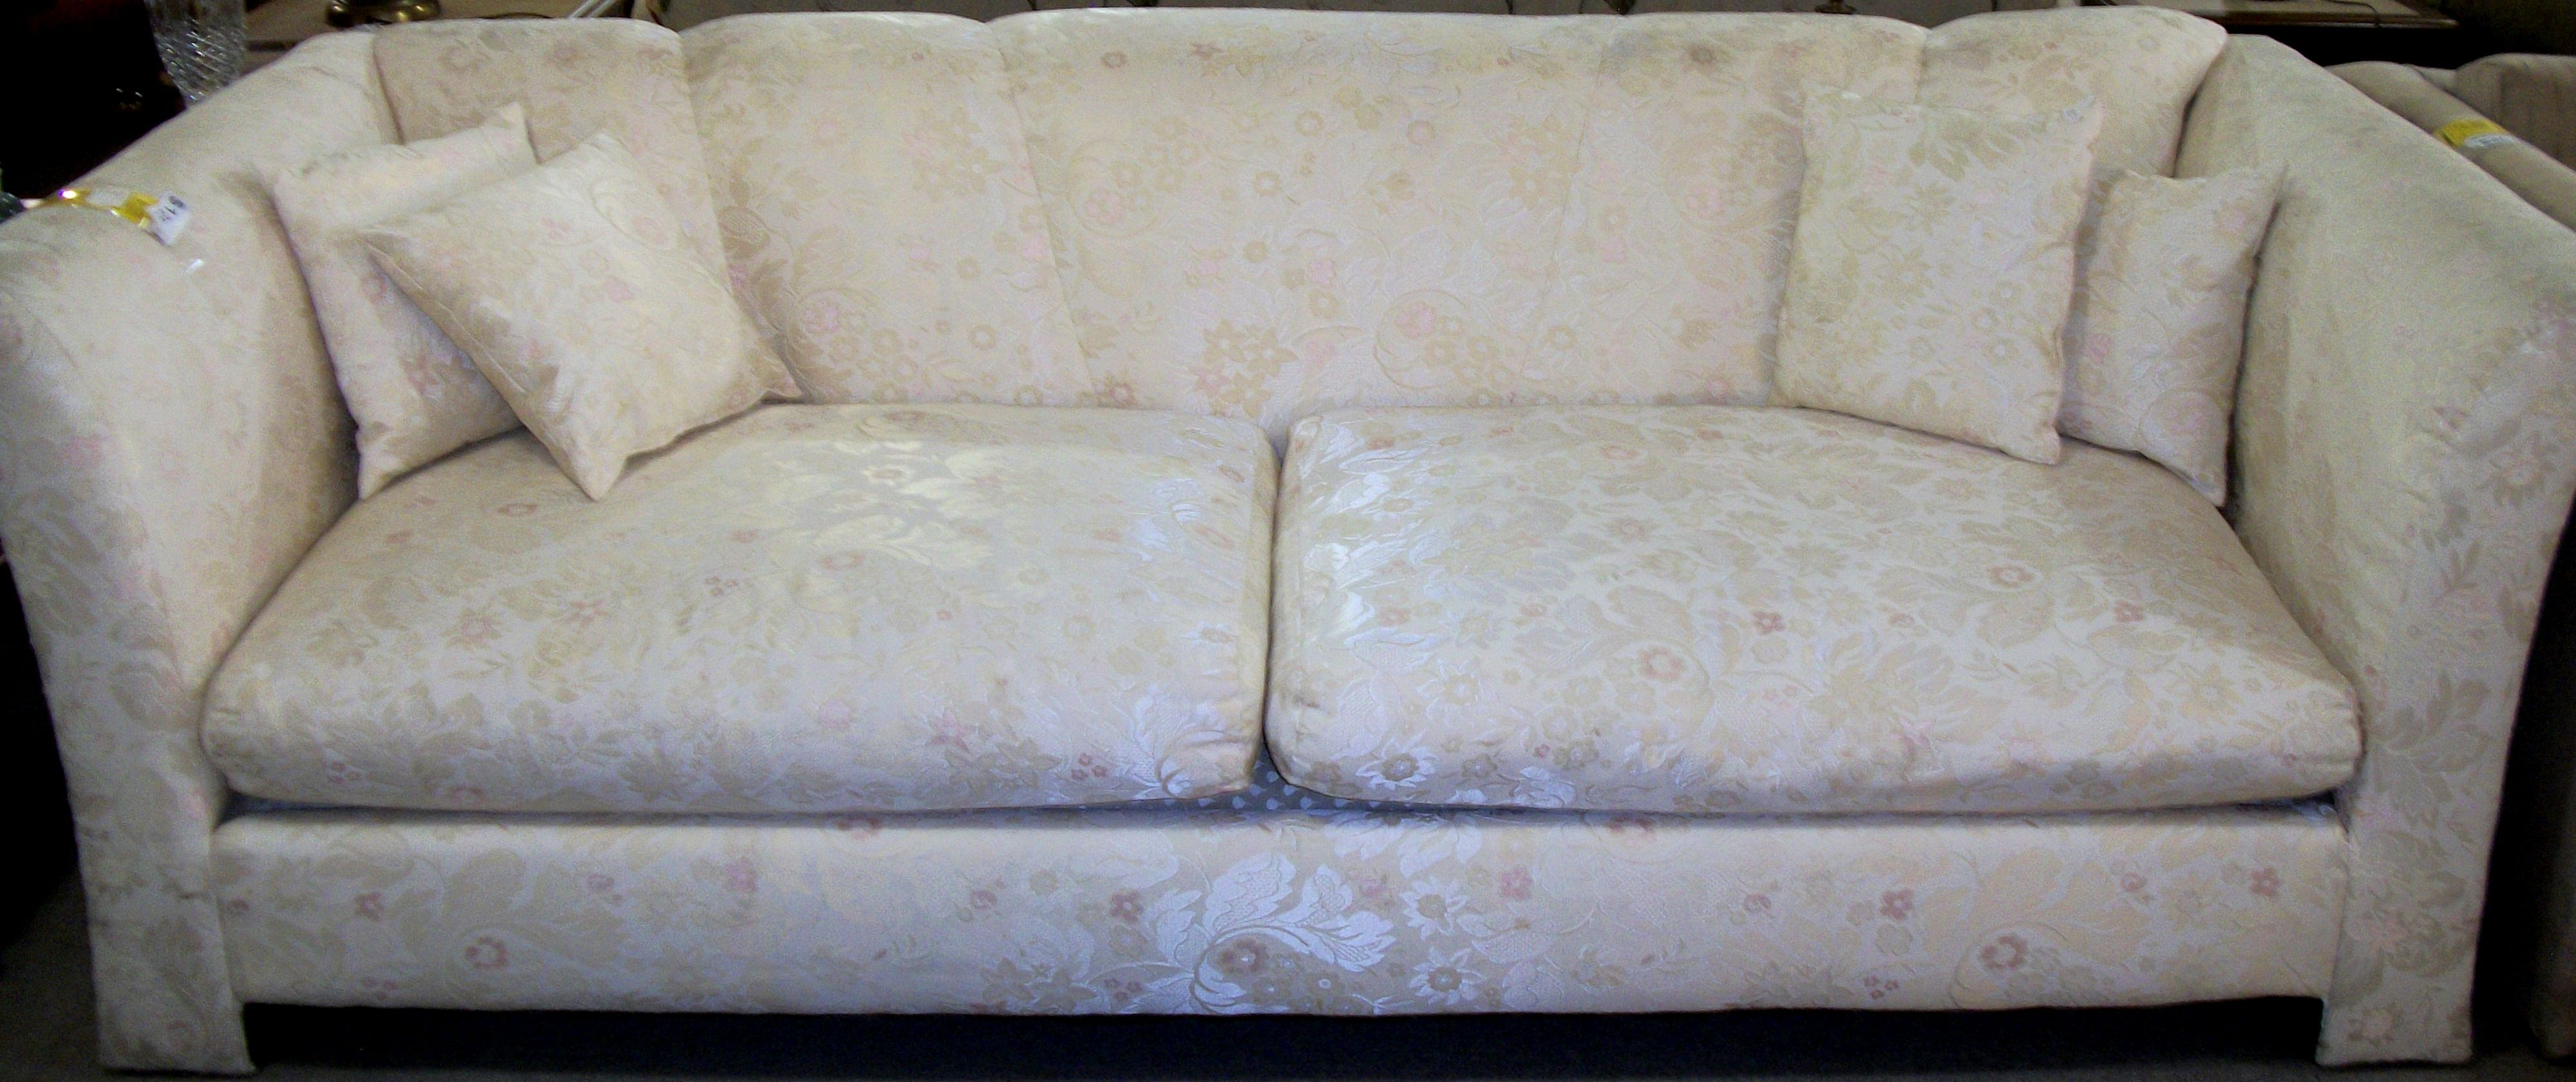 Amazing 2 Cushion White With Satin Paisley Couch With 4 Pillows Uwap Interior Chair Design Uwaporg